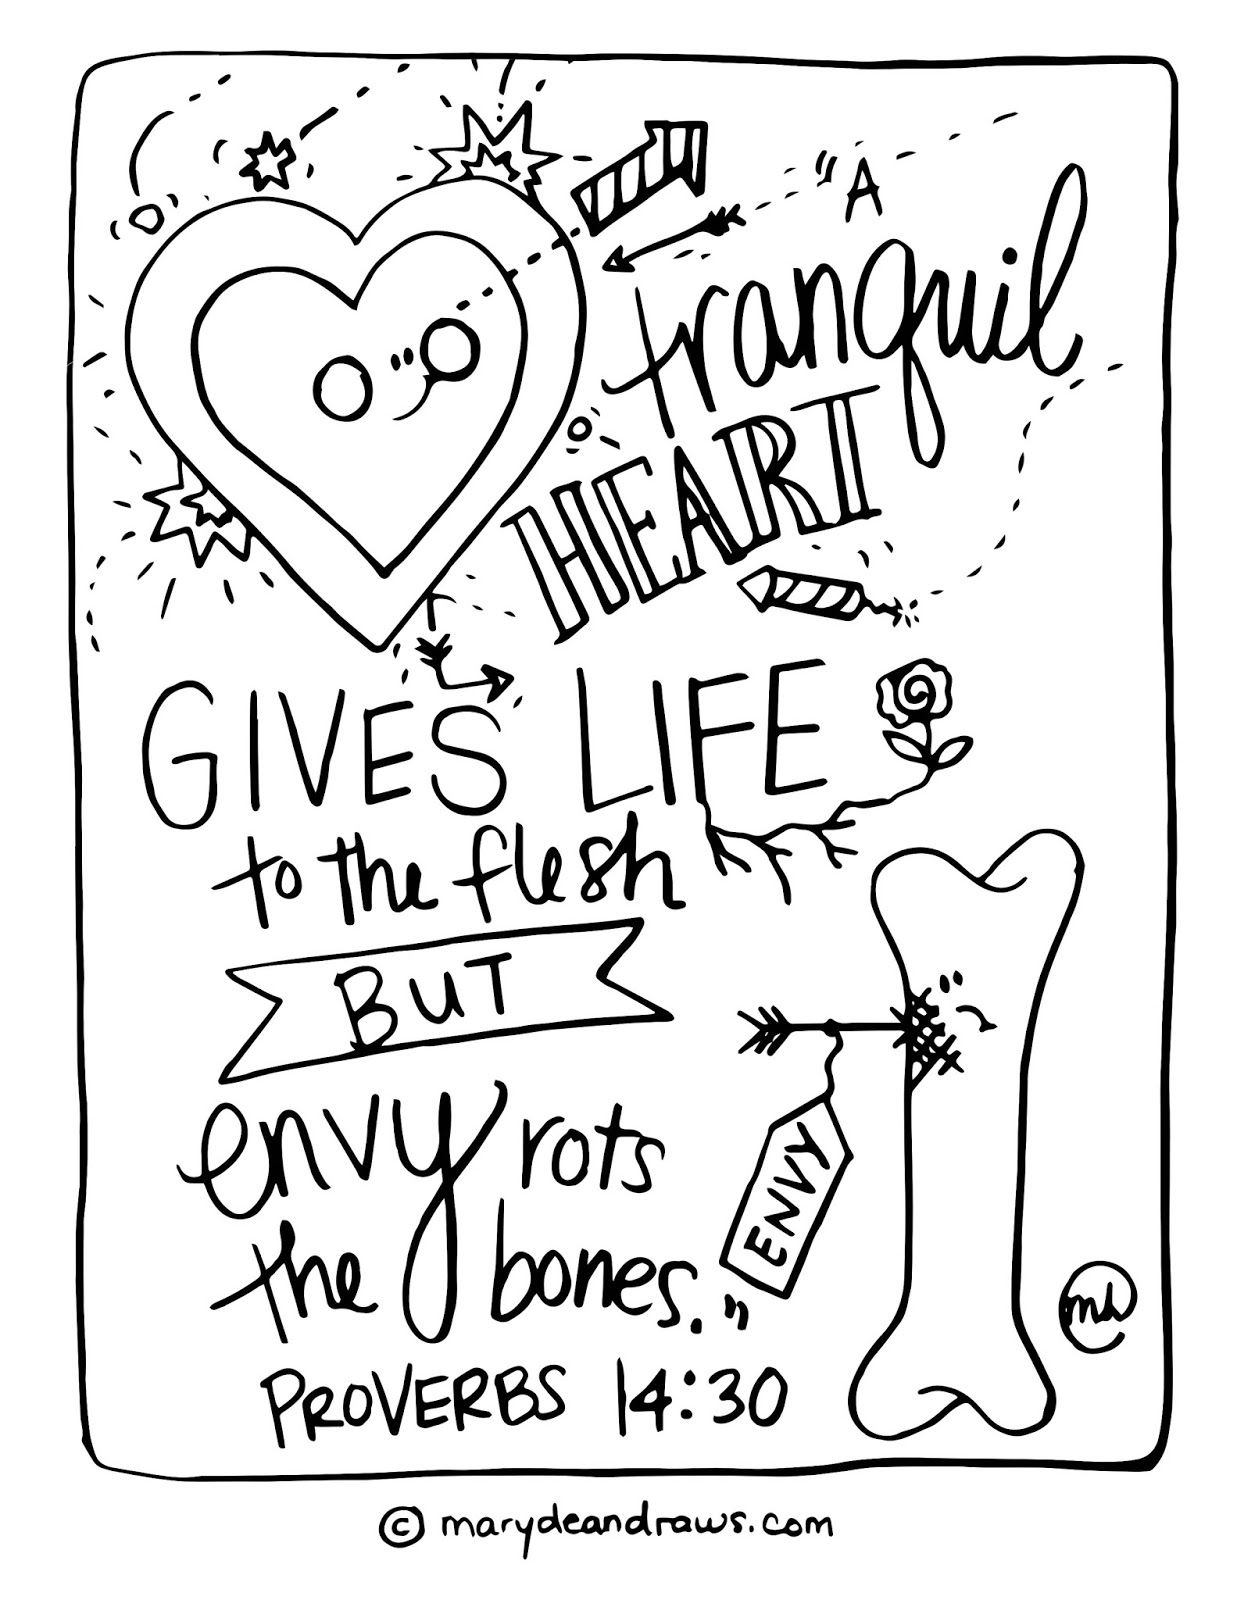 Coloring pages with bible verses -  A Tranquil Heart Gives Life To The Flesh By Envy Rots The Bones Proverbs Bible Verse Coloring Page